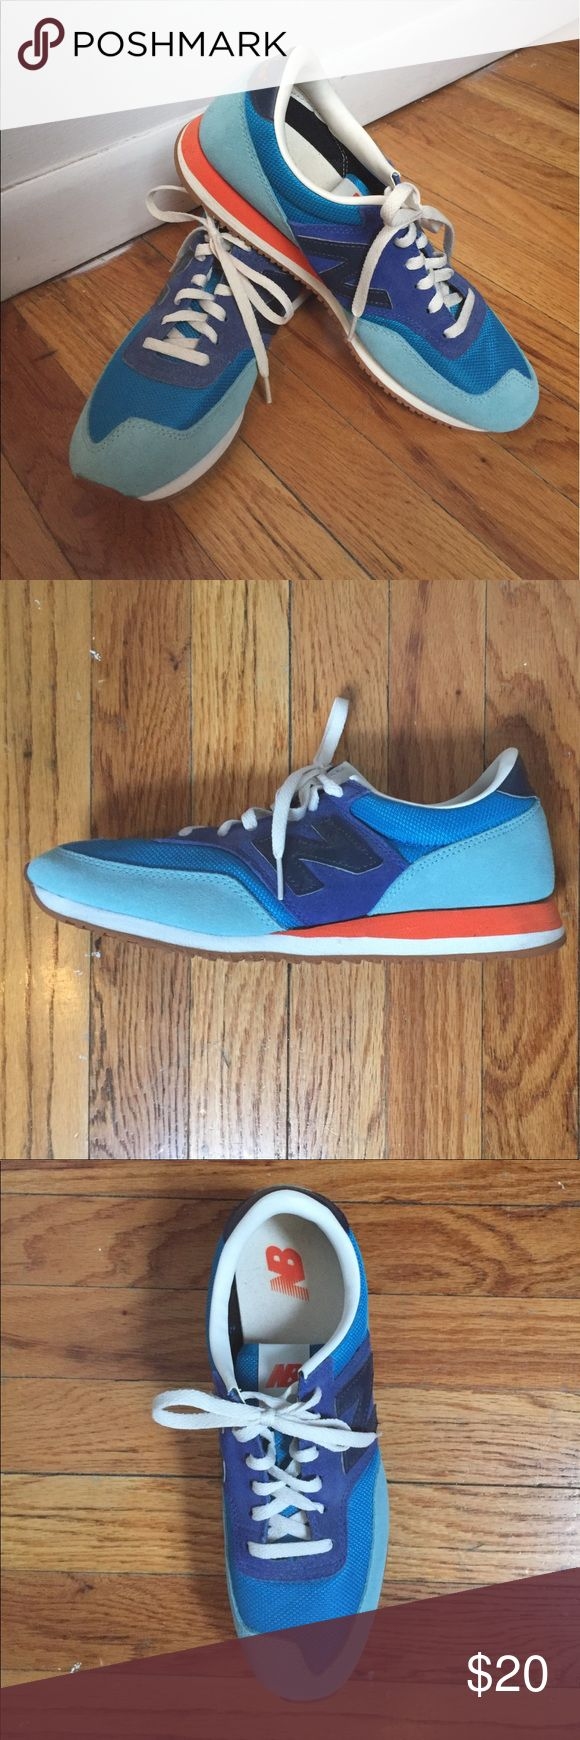 New Balance x Jcrew sneaker Multi-shade blue and orange New Balance for Jcrew sneaker in size 9 (worn once) New Balance Shoes Sneakers